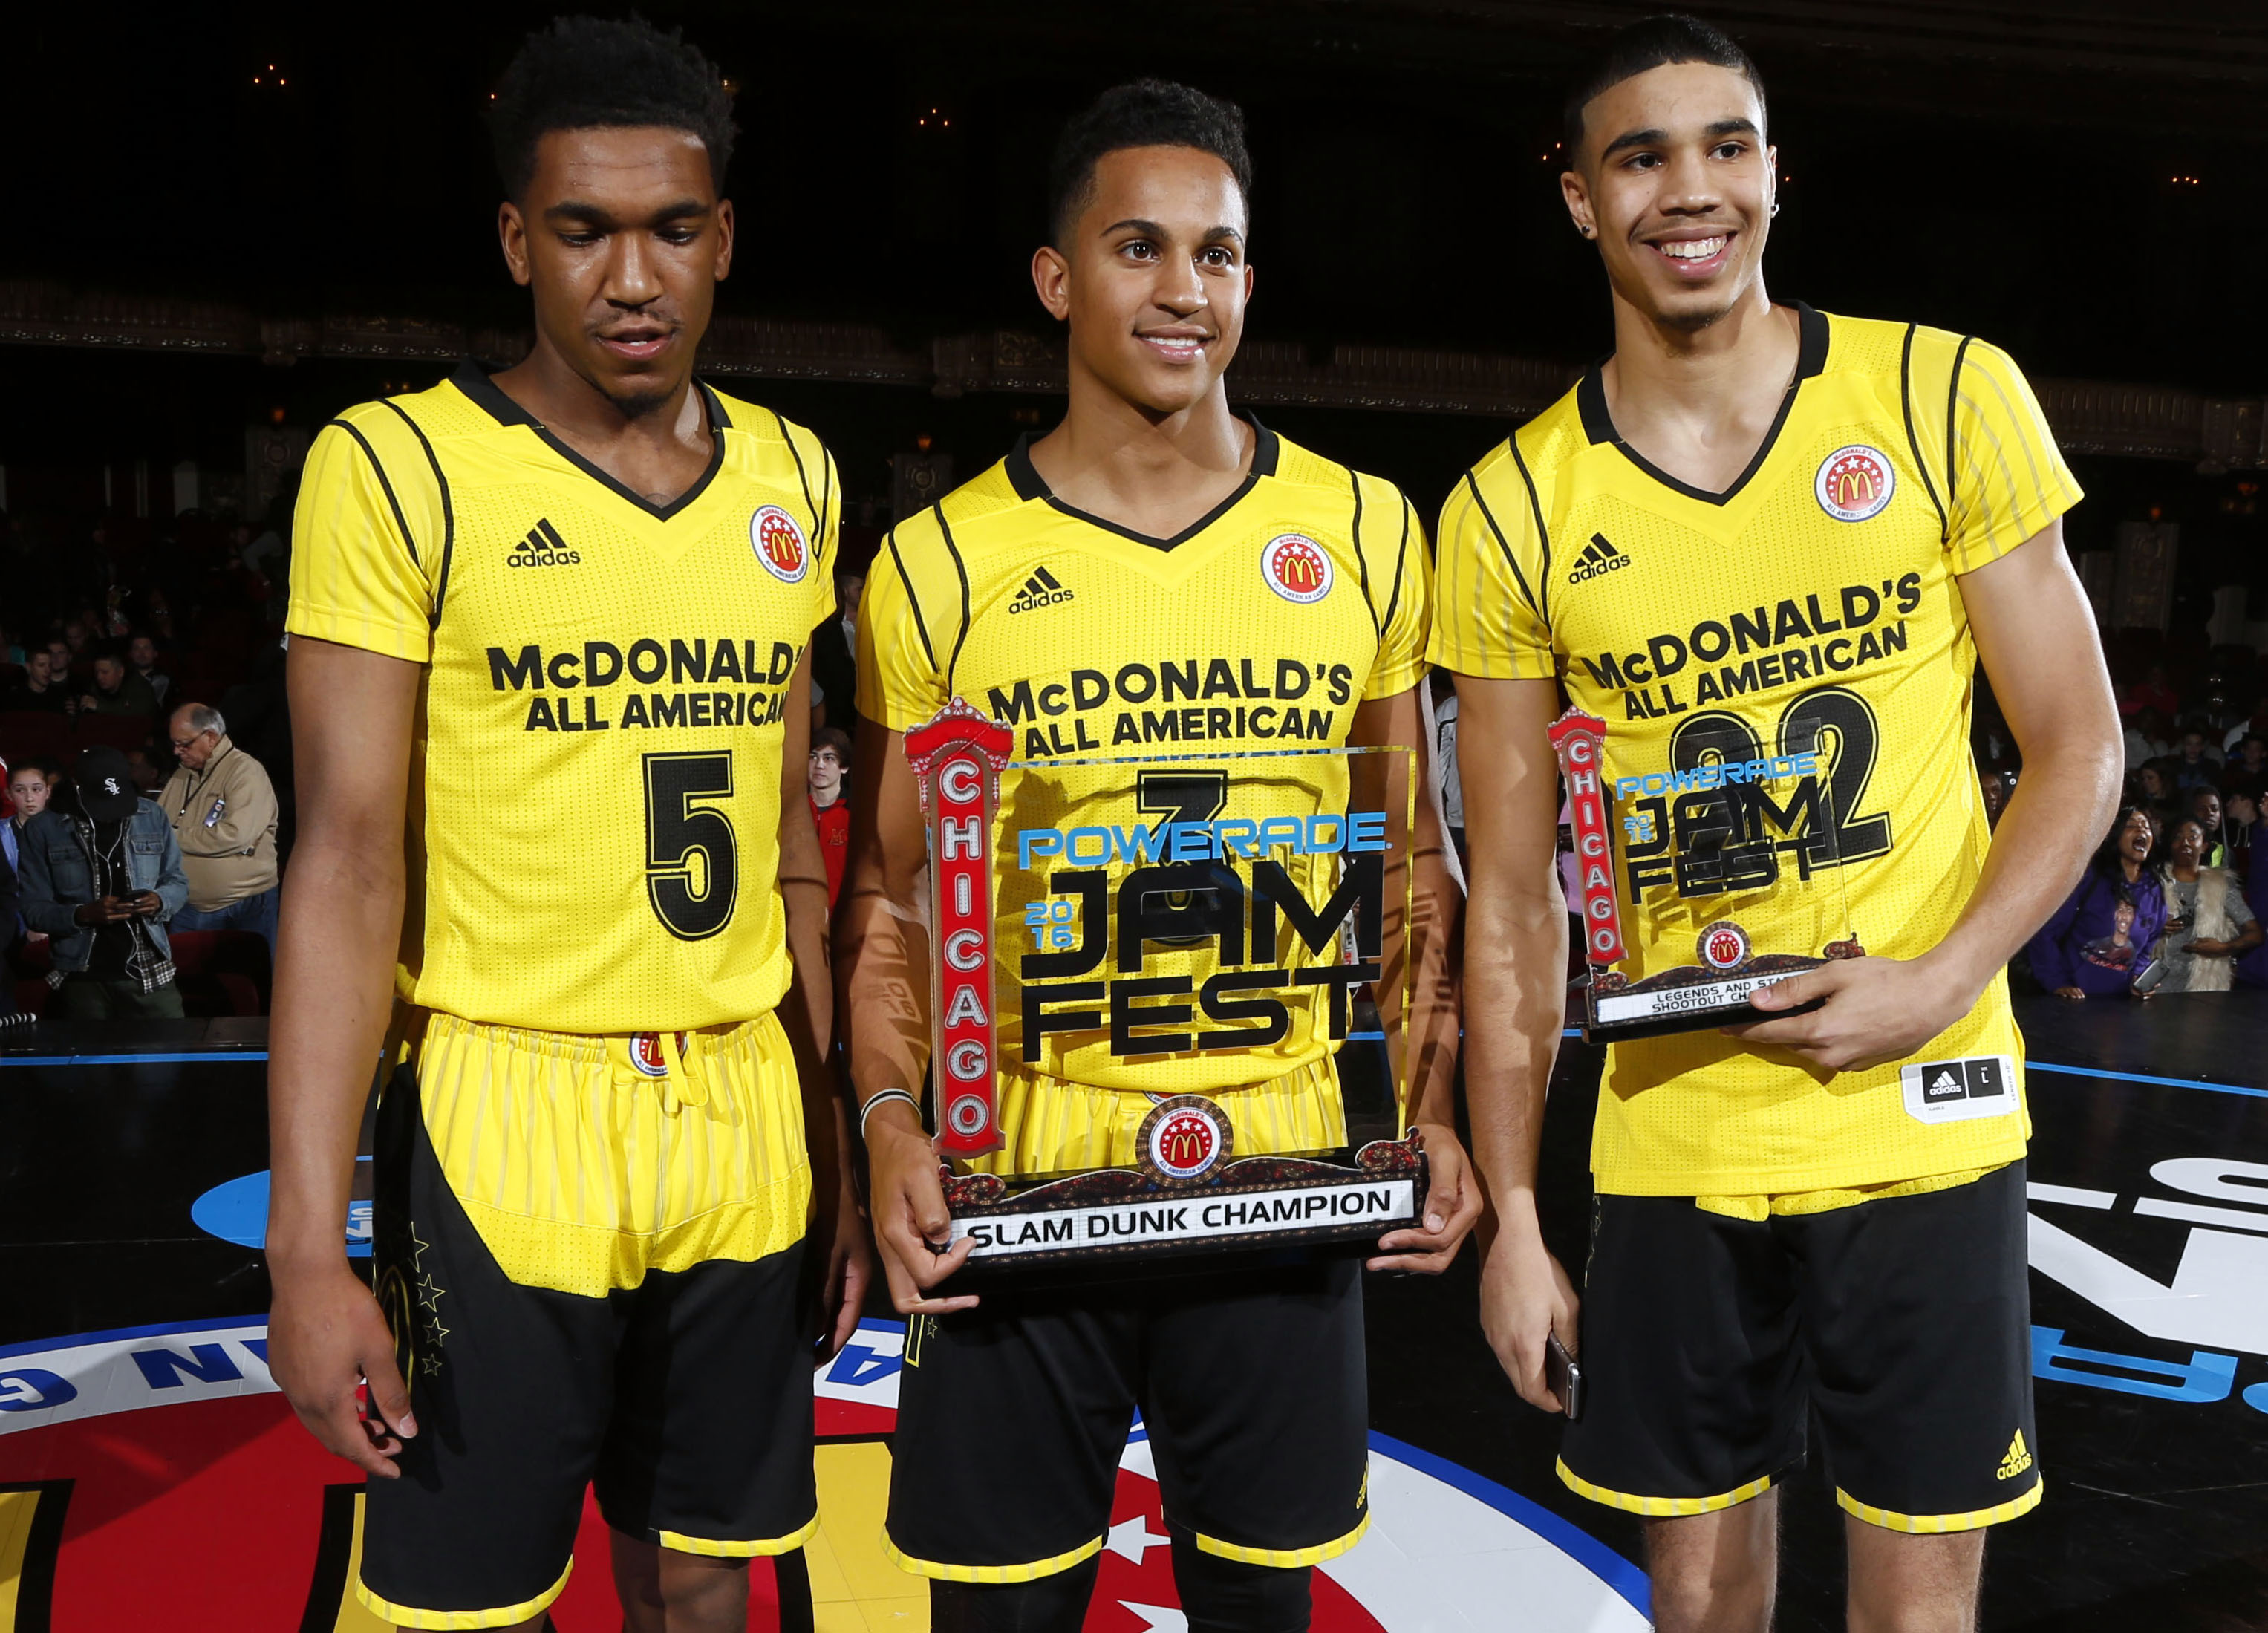 Malik Monk (from left), Frank Johnson, and Jayson Tatum pose for a photo after winning the three men's competitions during the McDonalds All-American Powerade Jamfest (Photo: Brian Spurlock, USA TODAY Sports)